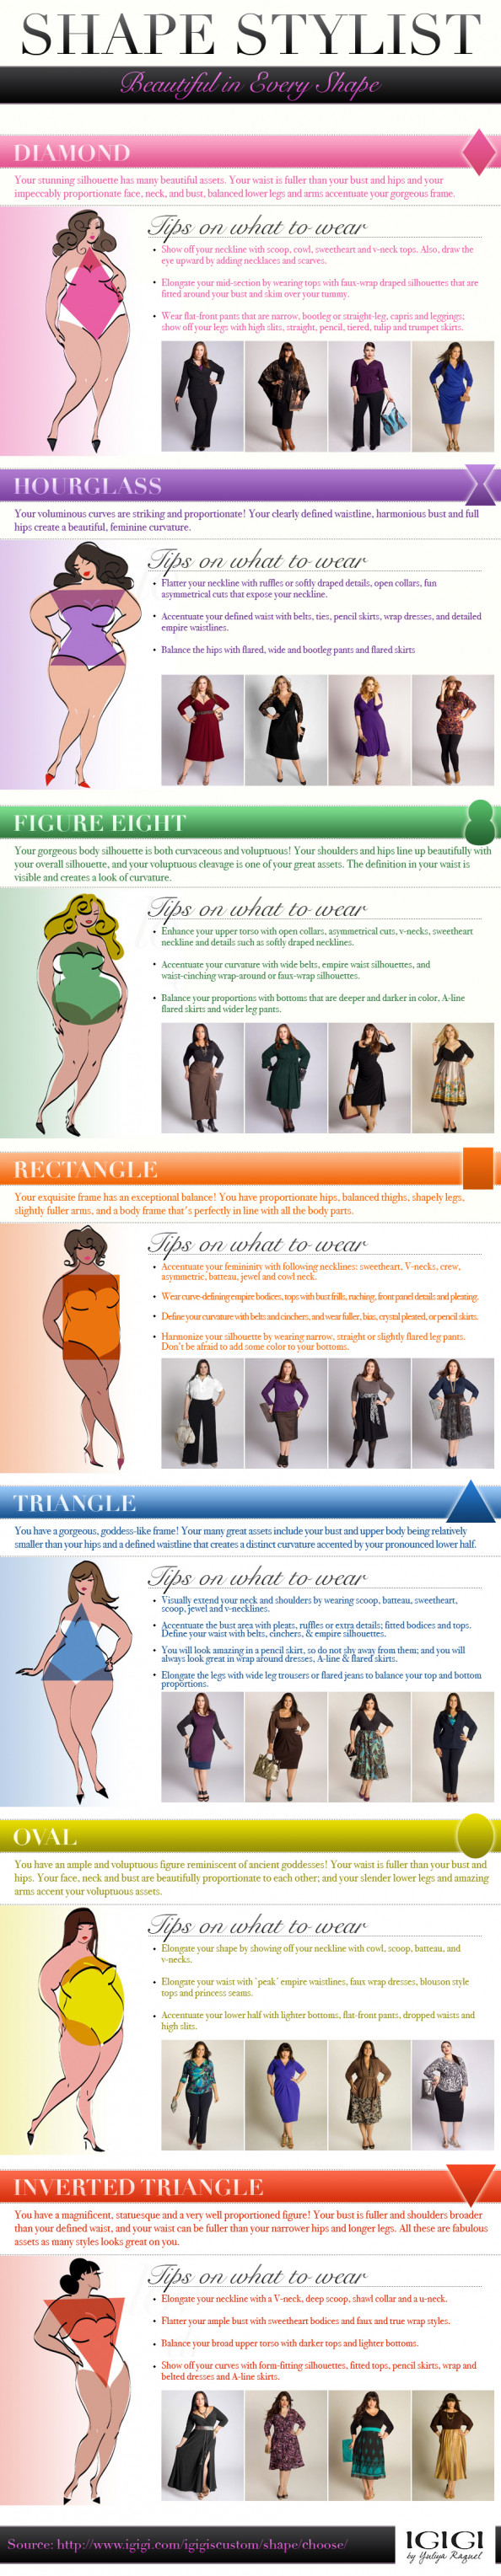 Shape Stylist Infographic